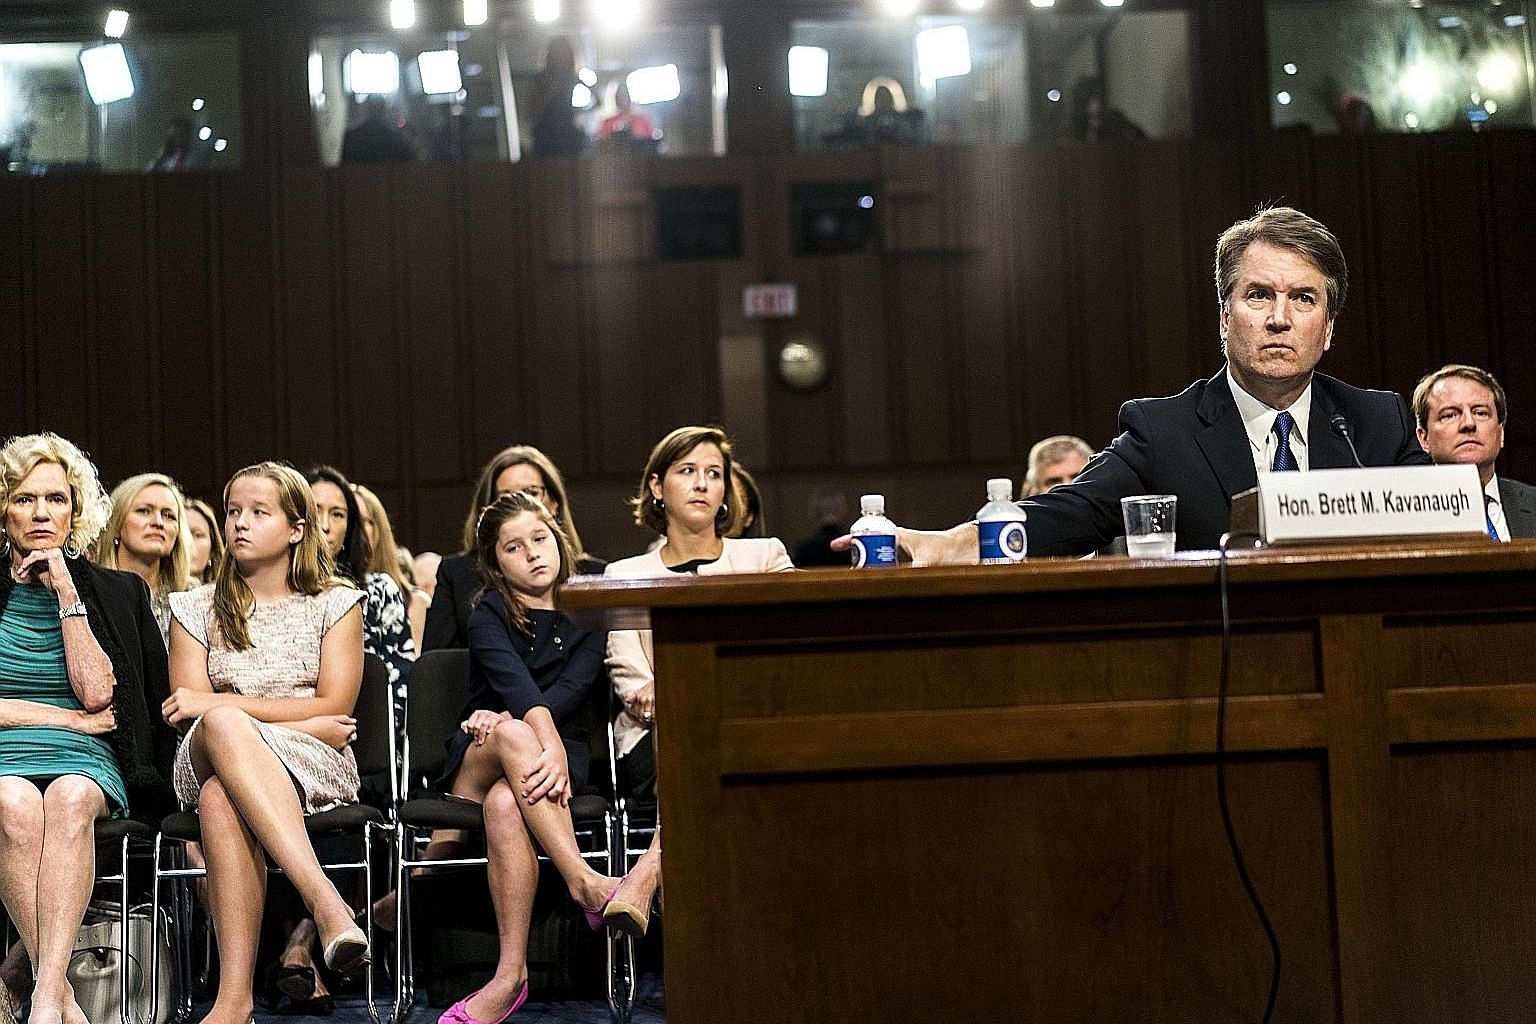 President Donald Trump's Supreme Court nominee Brett Kavanaugh at his confirmation hearing on Sept 4. He now faces two separate allegations of sexual misconduct, both allegedly taking place in the 1980s.